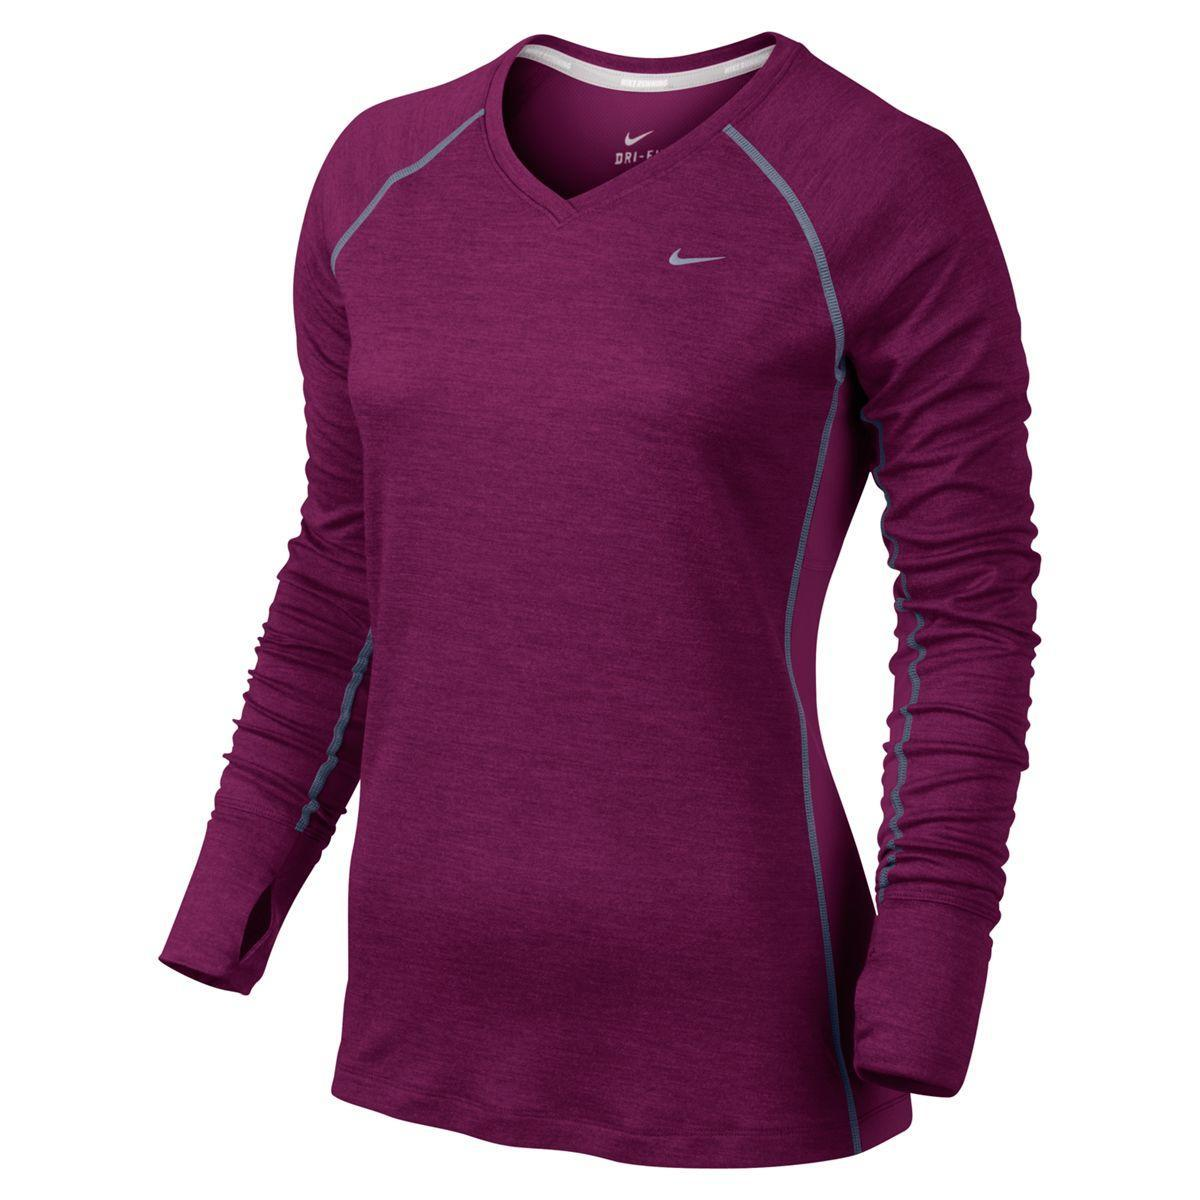 17d7bd0b918d Nike Dri-FIT Wool Womens V-Neck Top - Raspberry Red - Tennisnuts.com